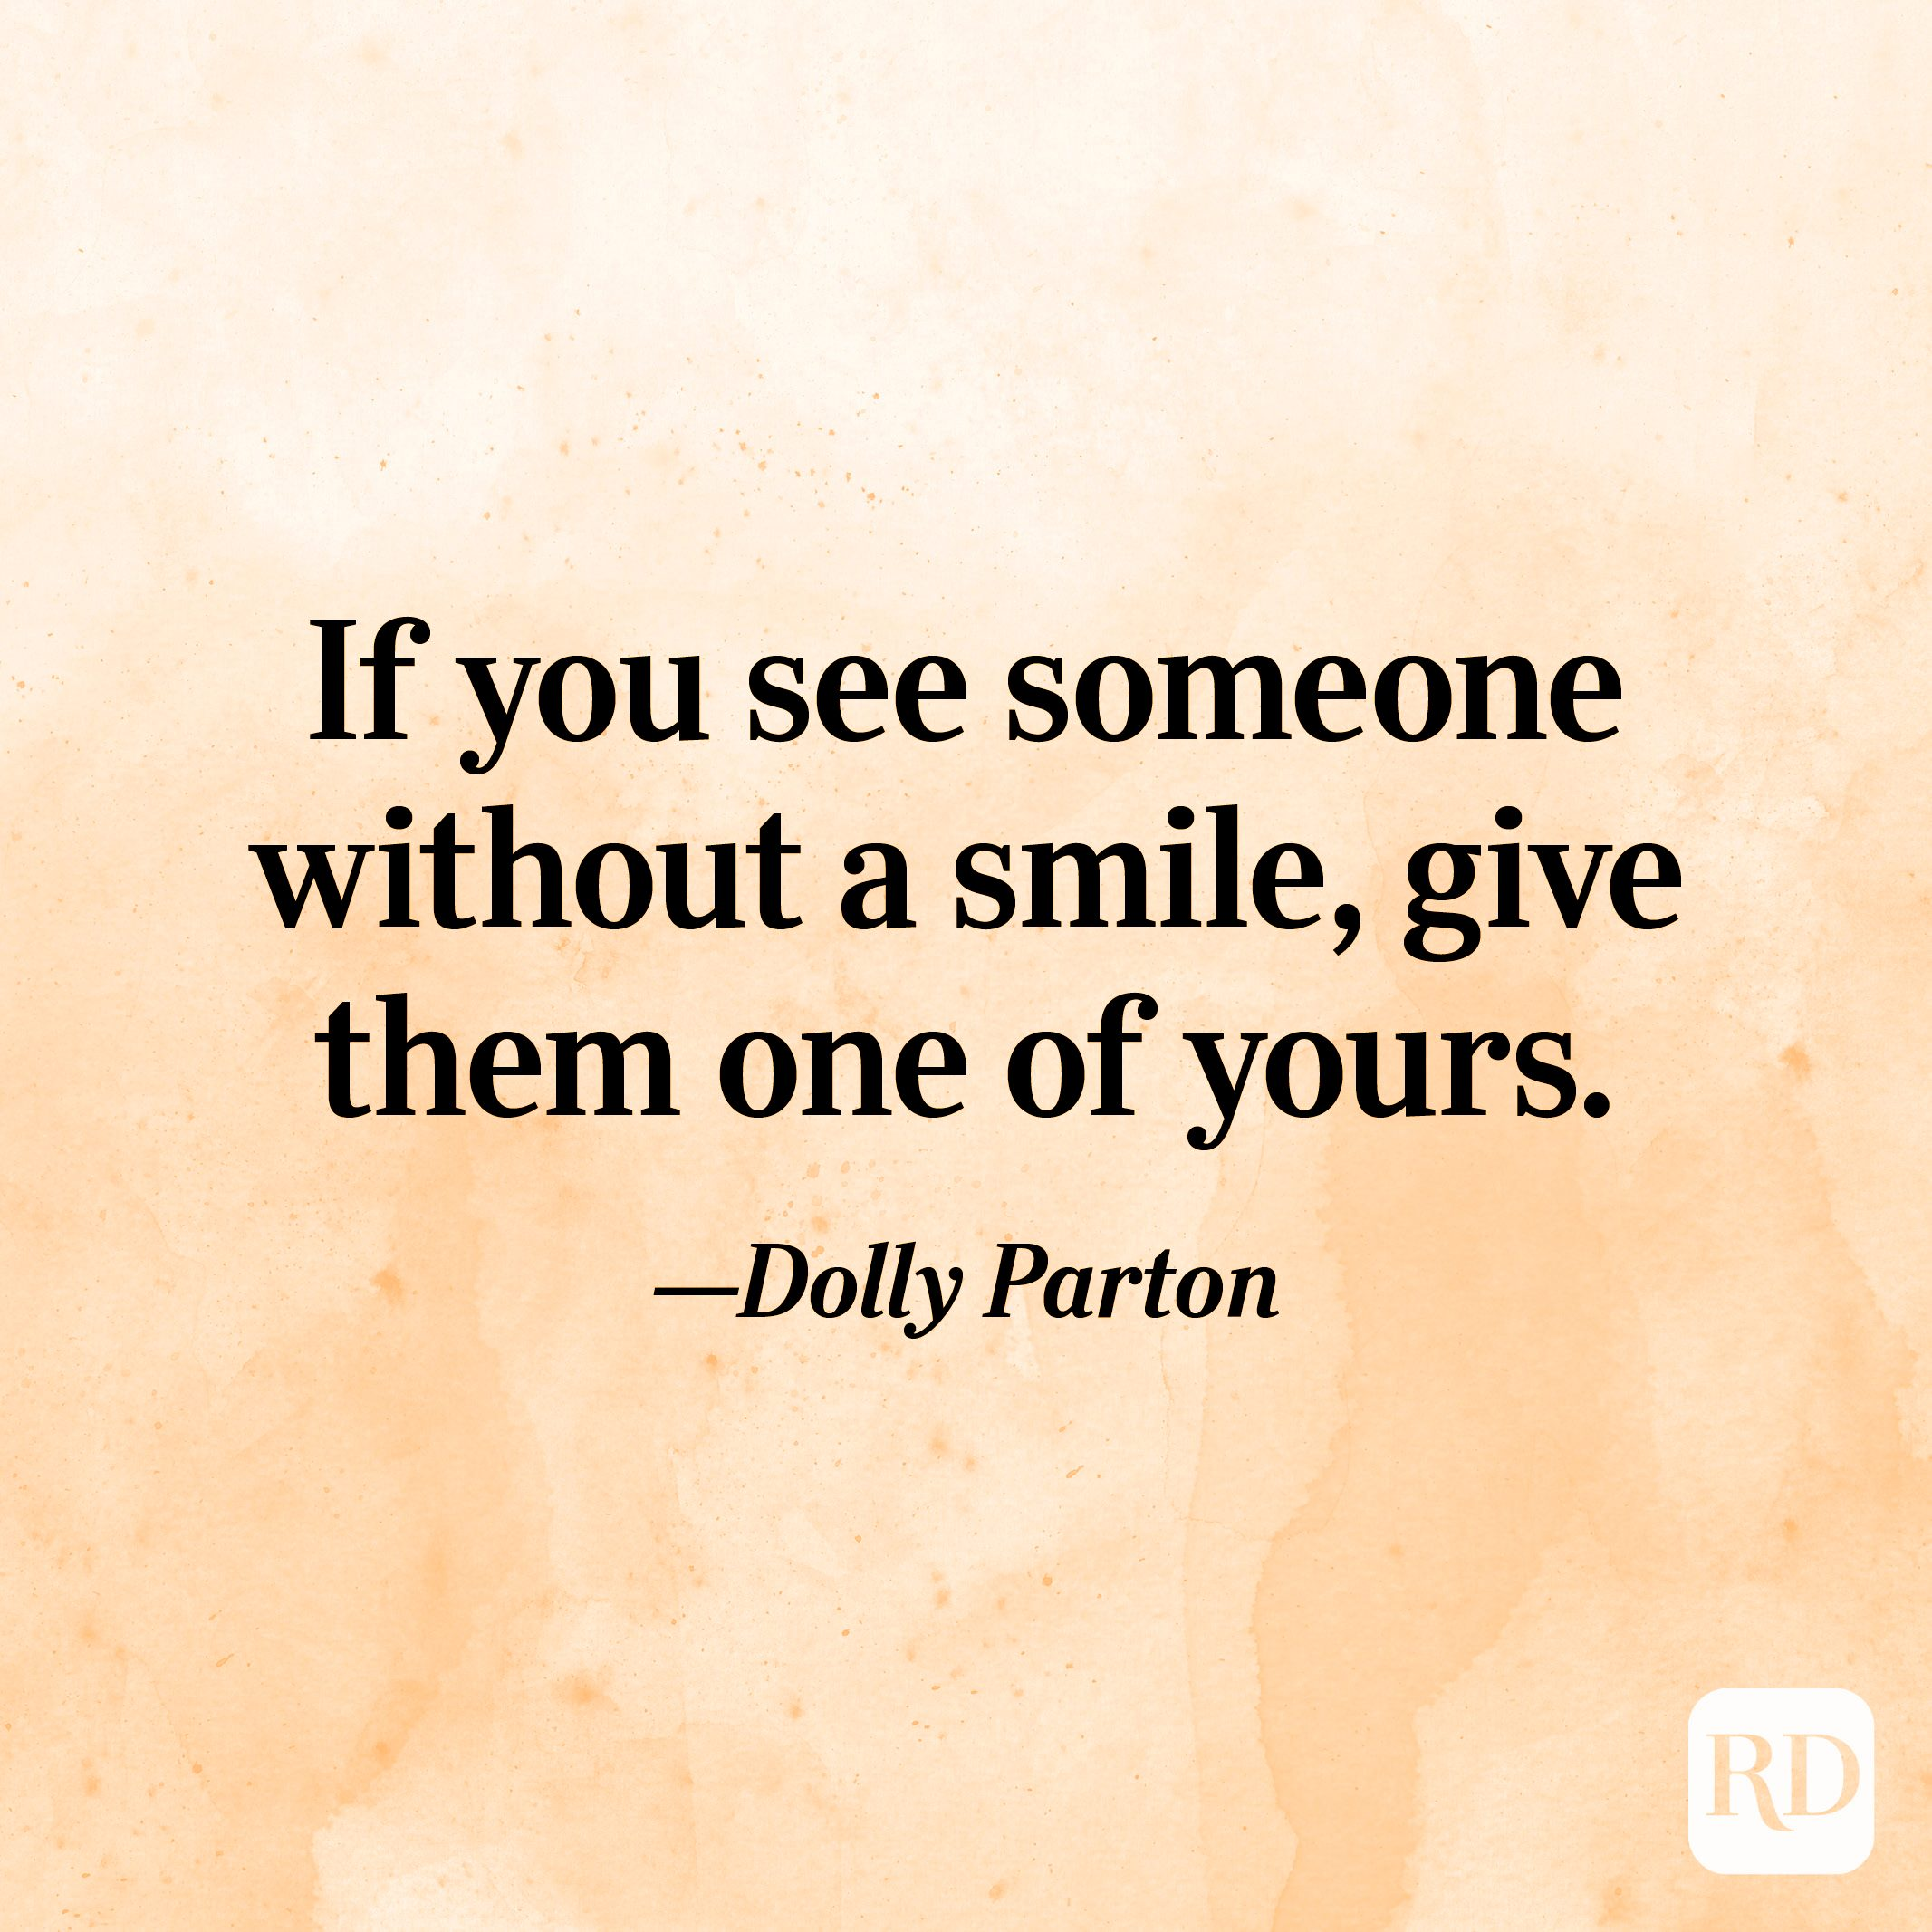 """""""If you see someone without a smile, give them one of yours."""" —Dolly Parton"""